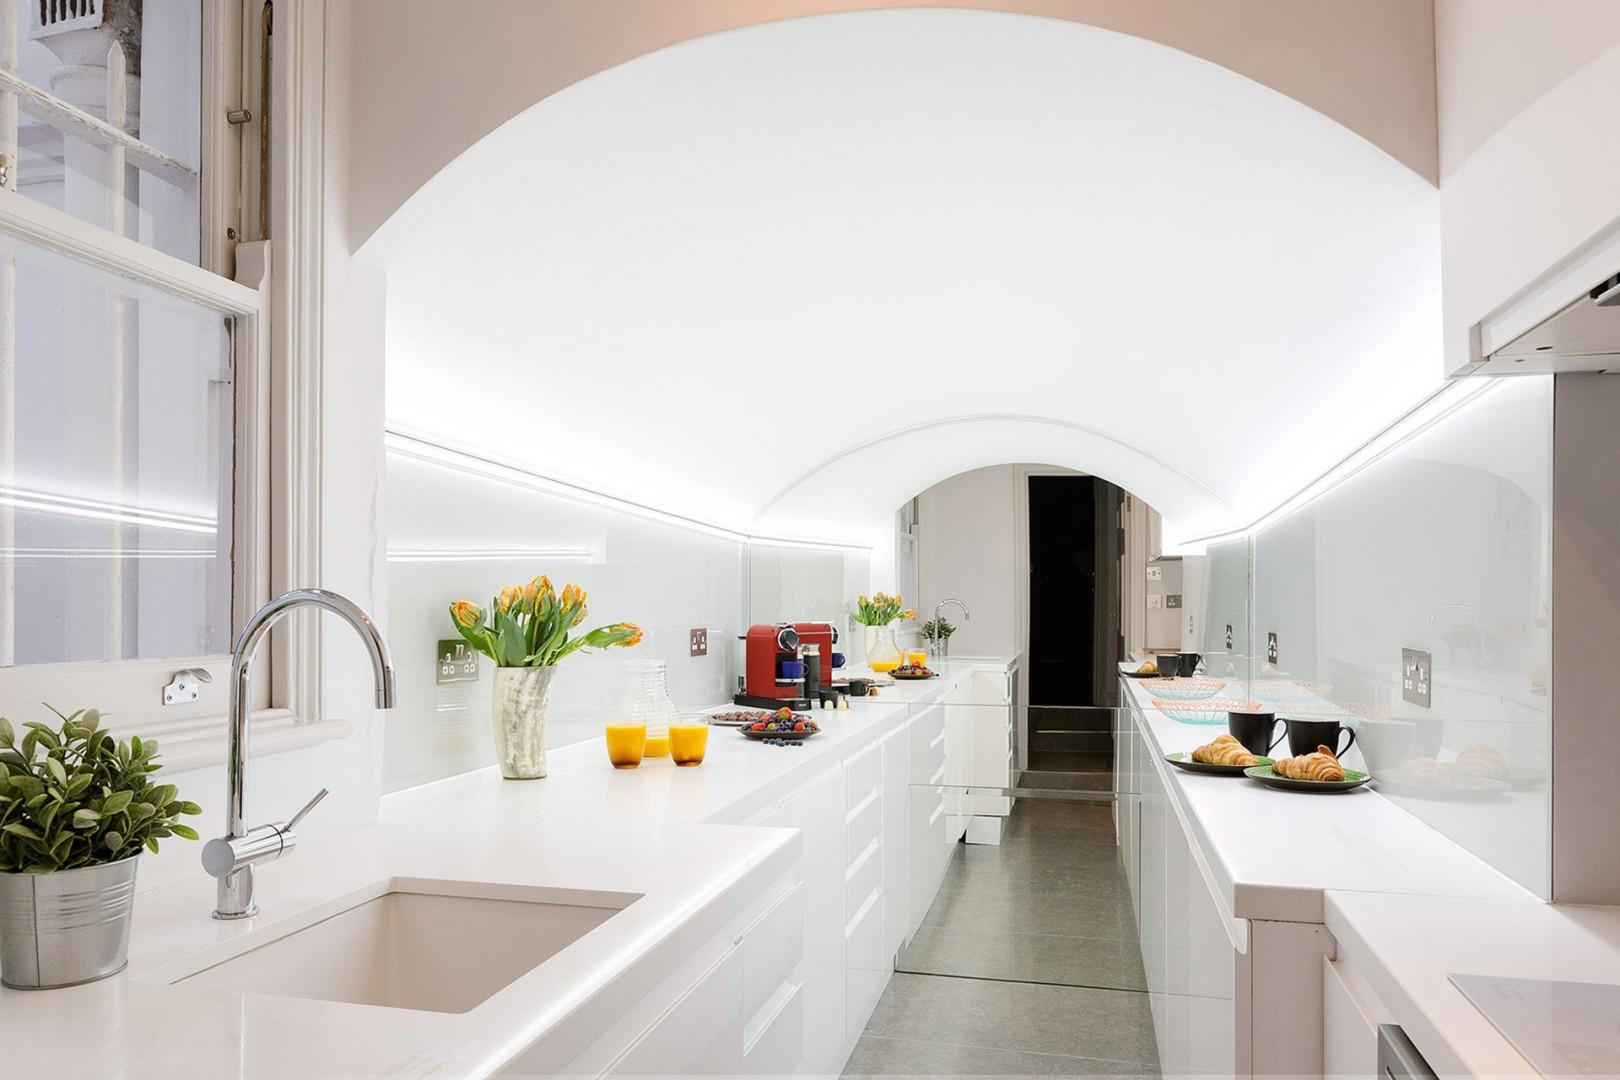 Sleek, fully-equipped kitchen